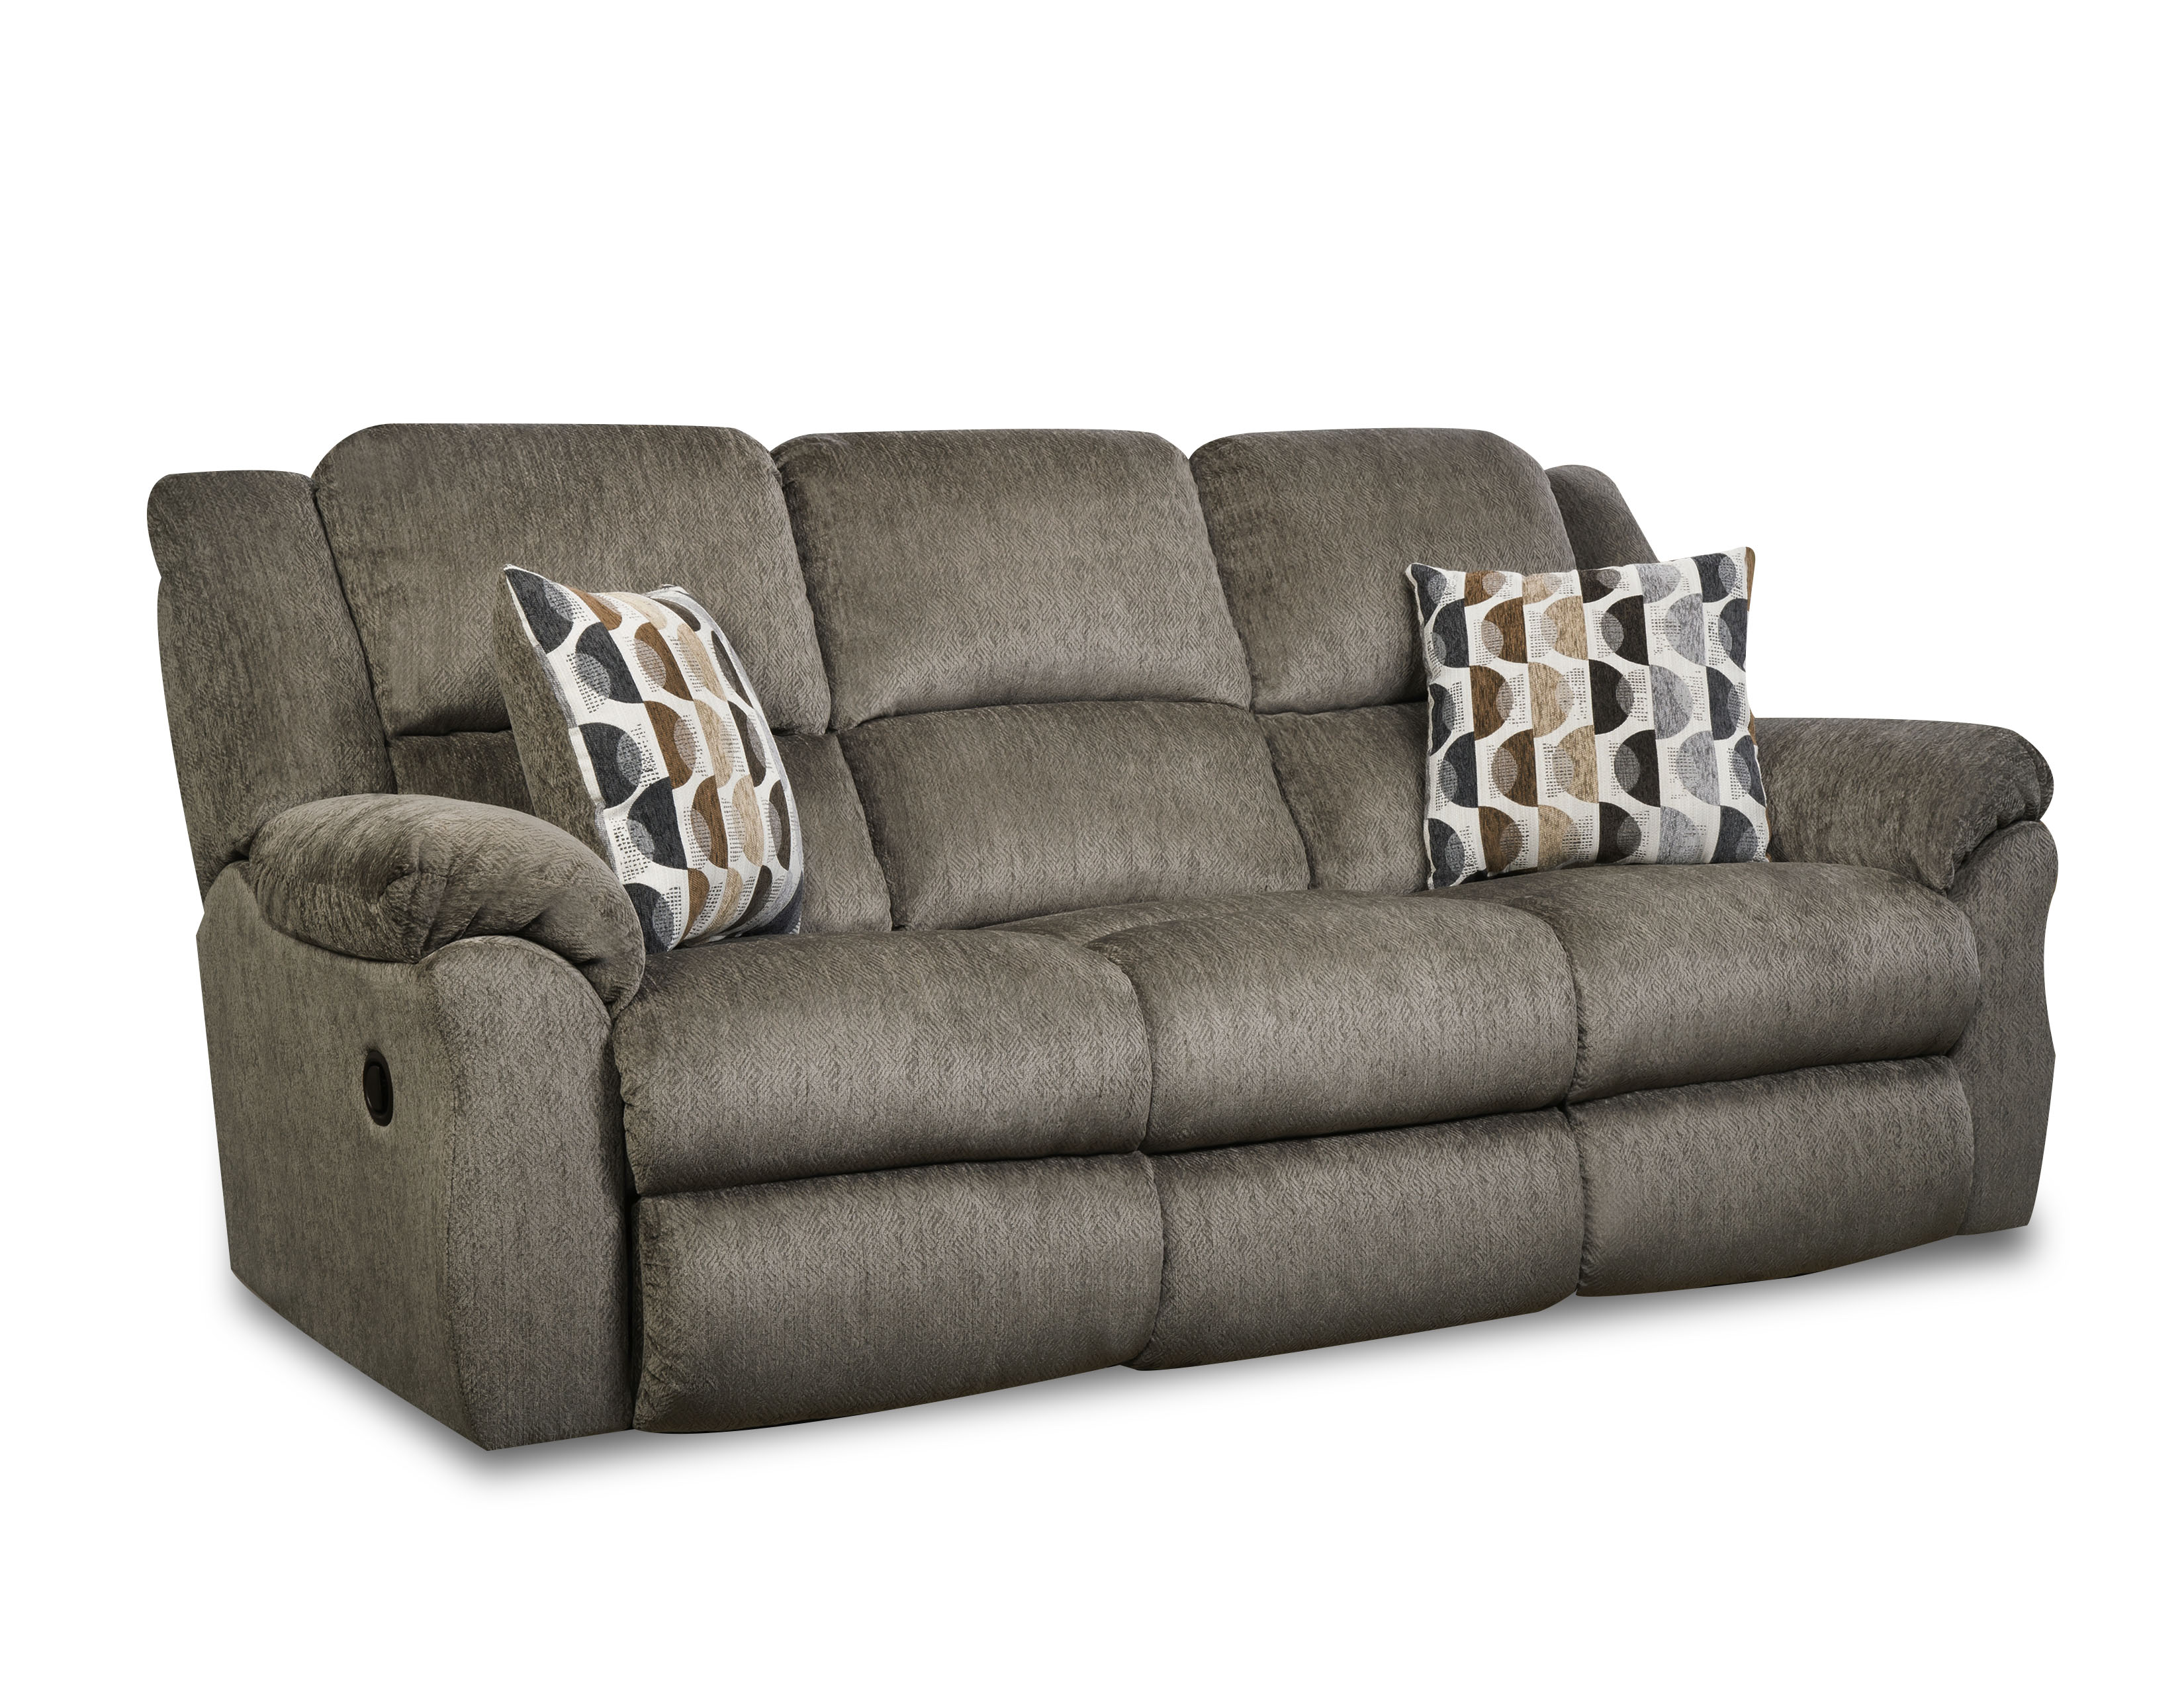 Homestretch Double Reclining Sofa Your Furniture 4 Less